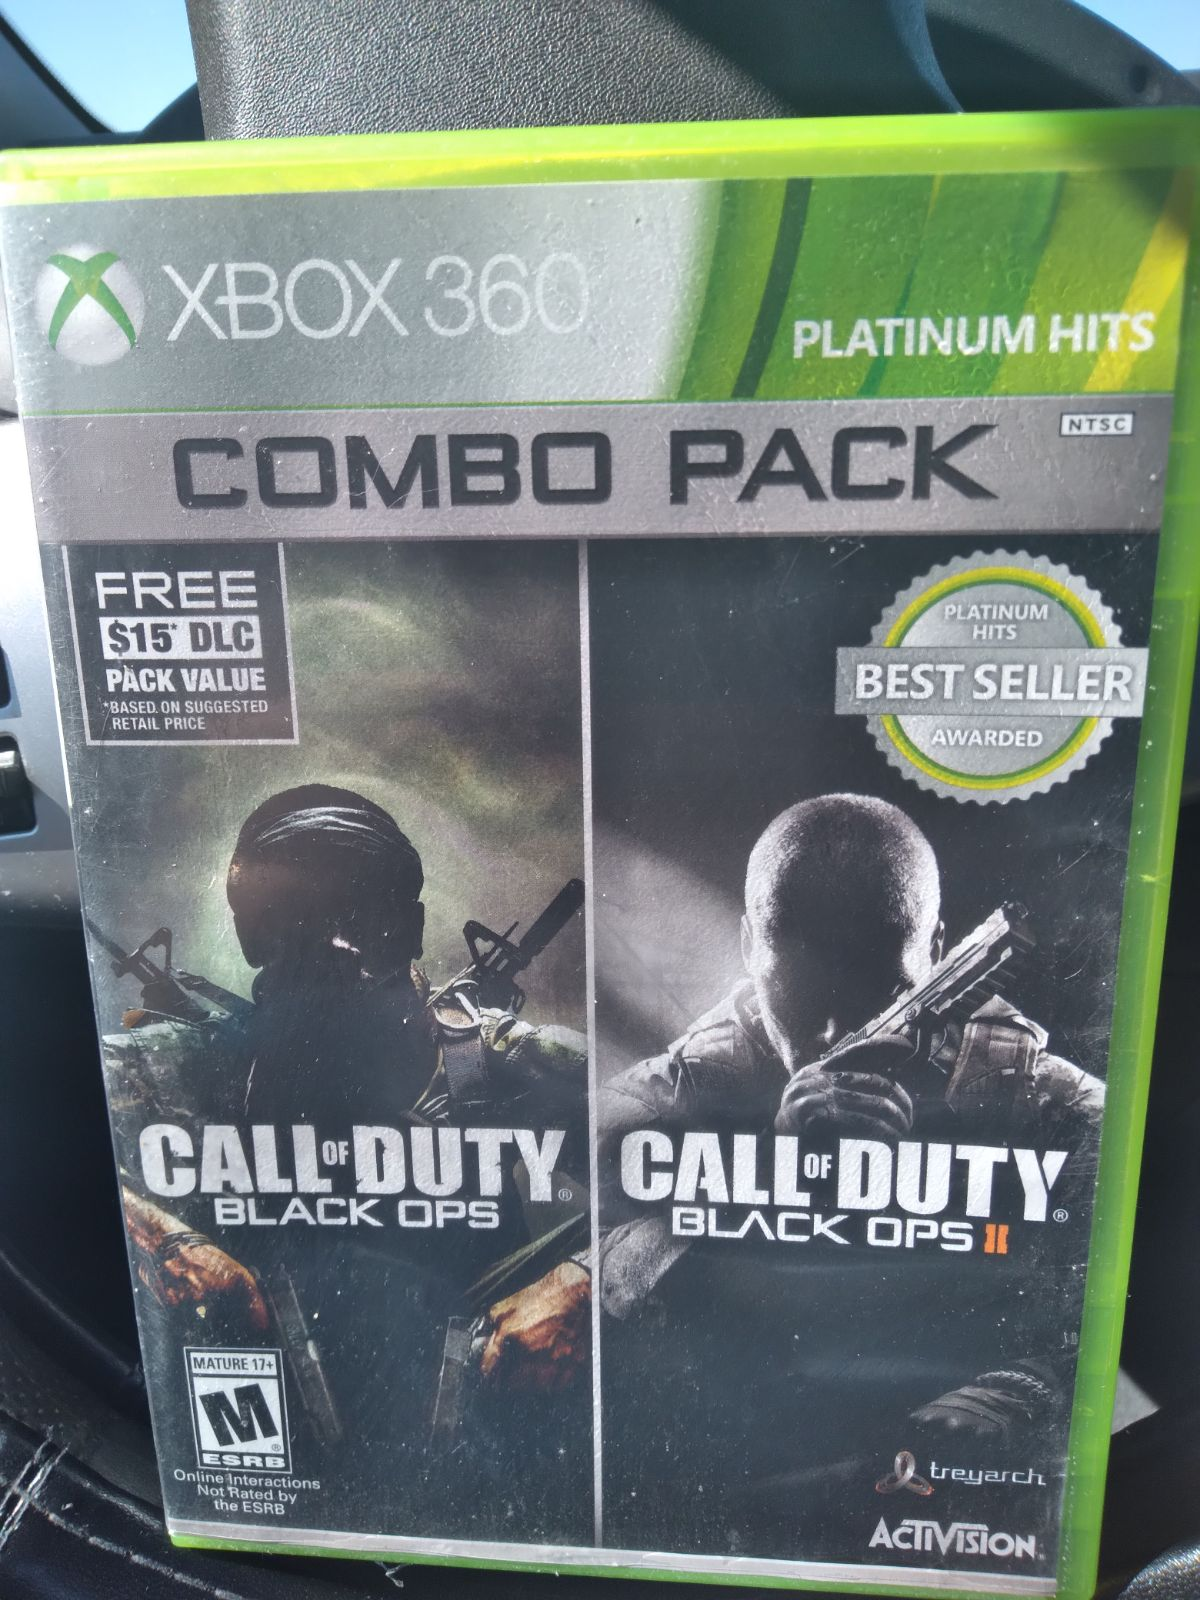 Call of Duty Black Ops 1 & 2 on Xbox 360